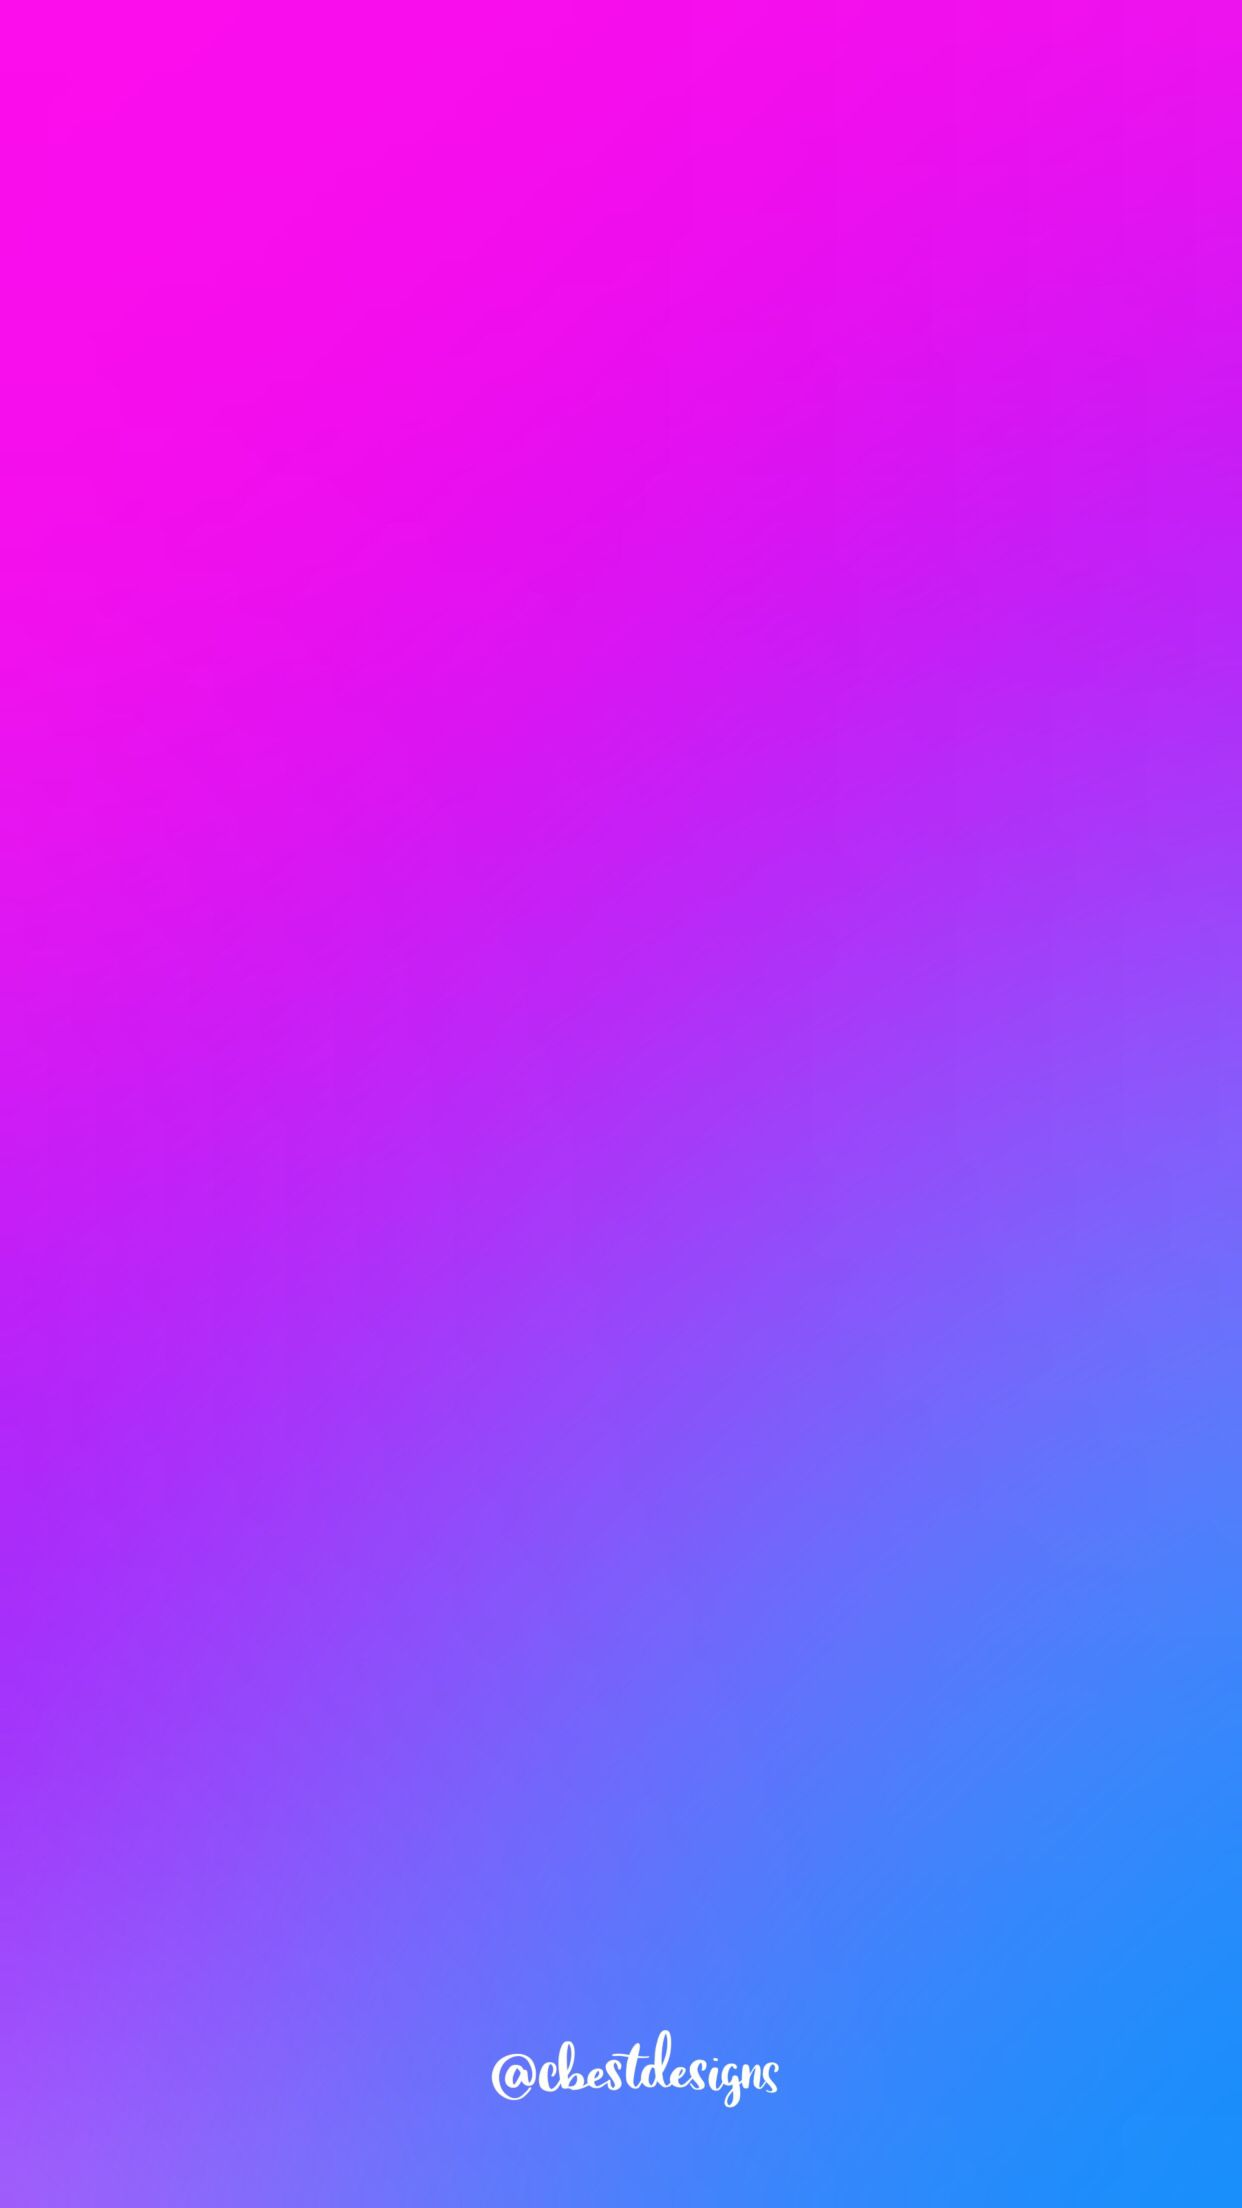 Free Iphone Mobile Wallpaper Pink Blue Purple Gradient By Cbestdesigns Wallpaper Pink And Blue Iphone Wallpaper Blur Wallpaper Iphone Christmas